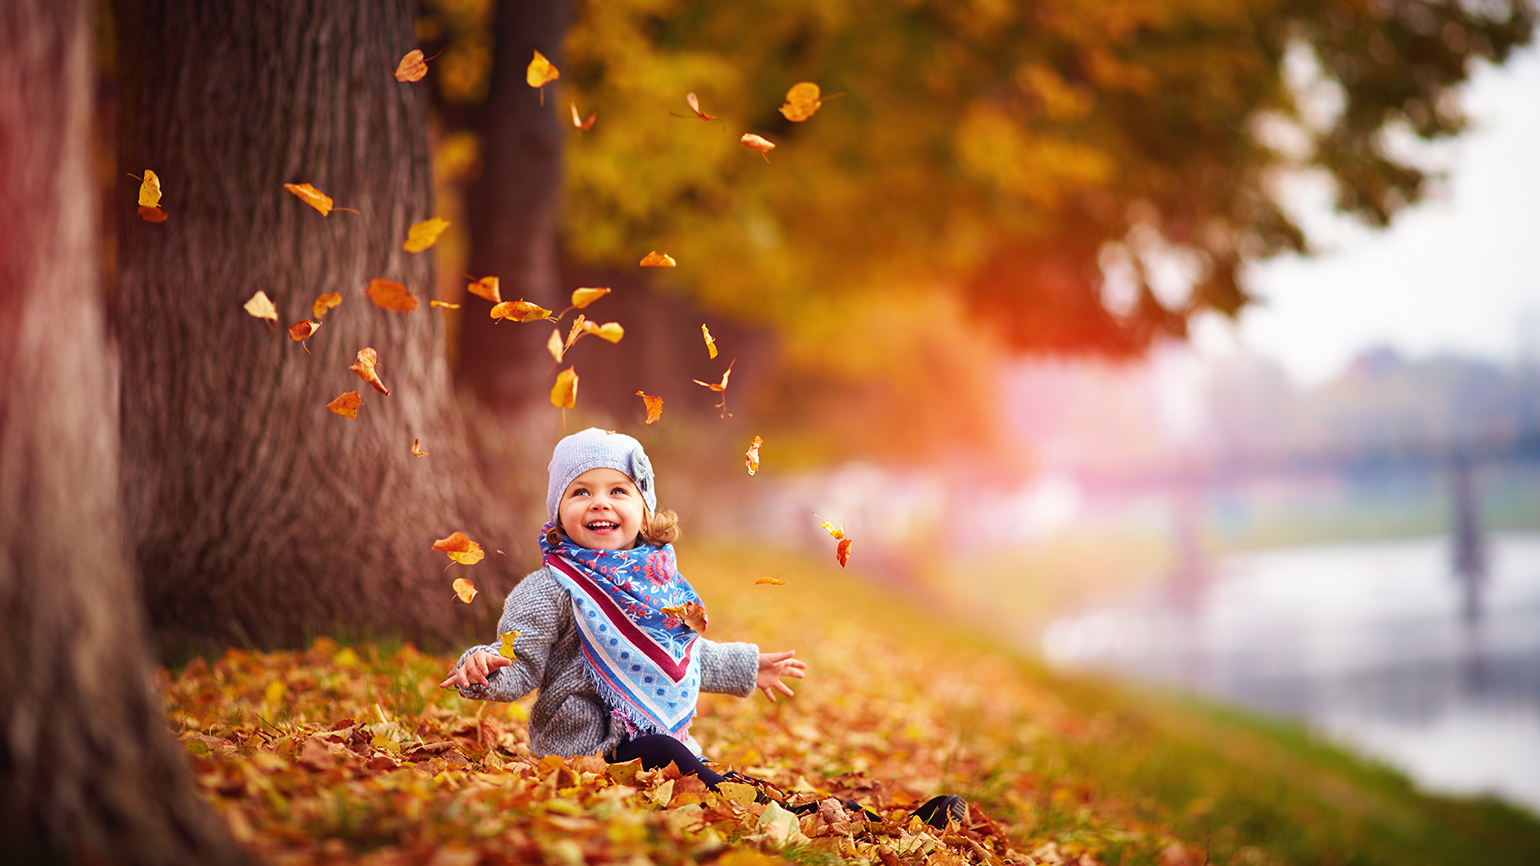 A happy young child plays in a pile of autumn's fallen leaves